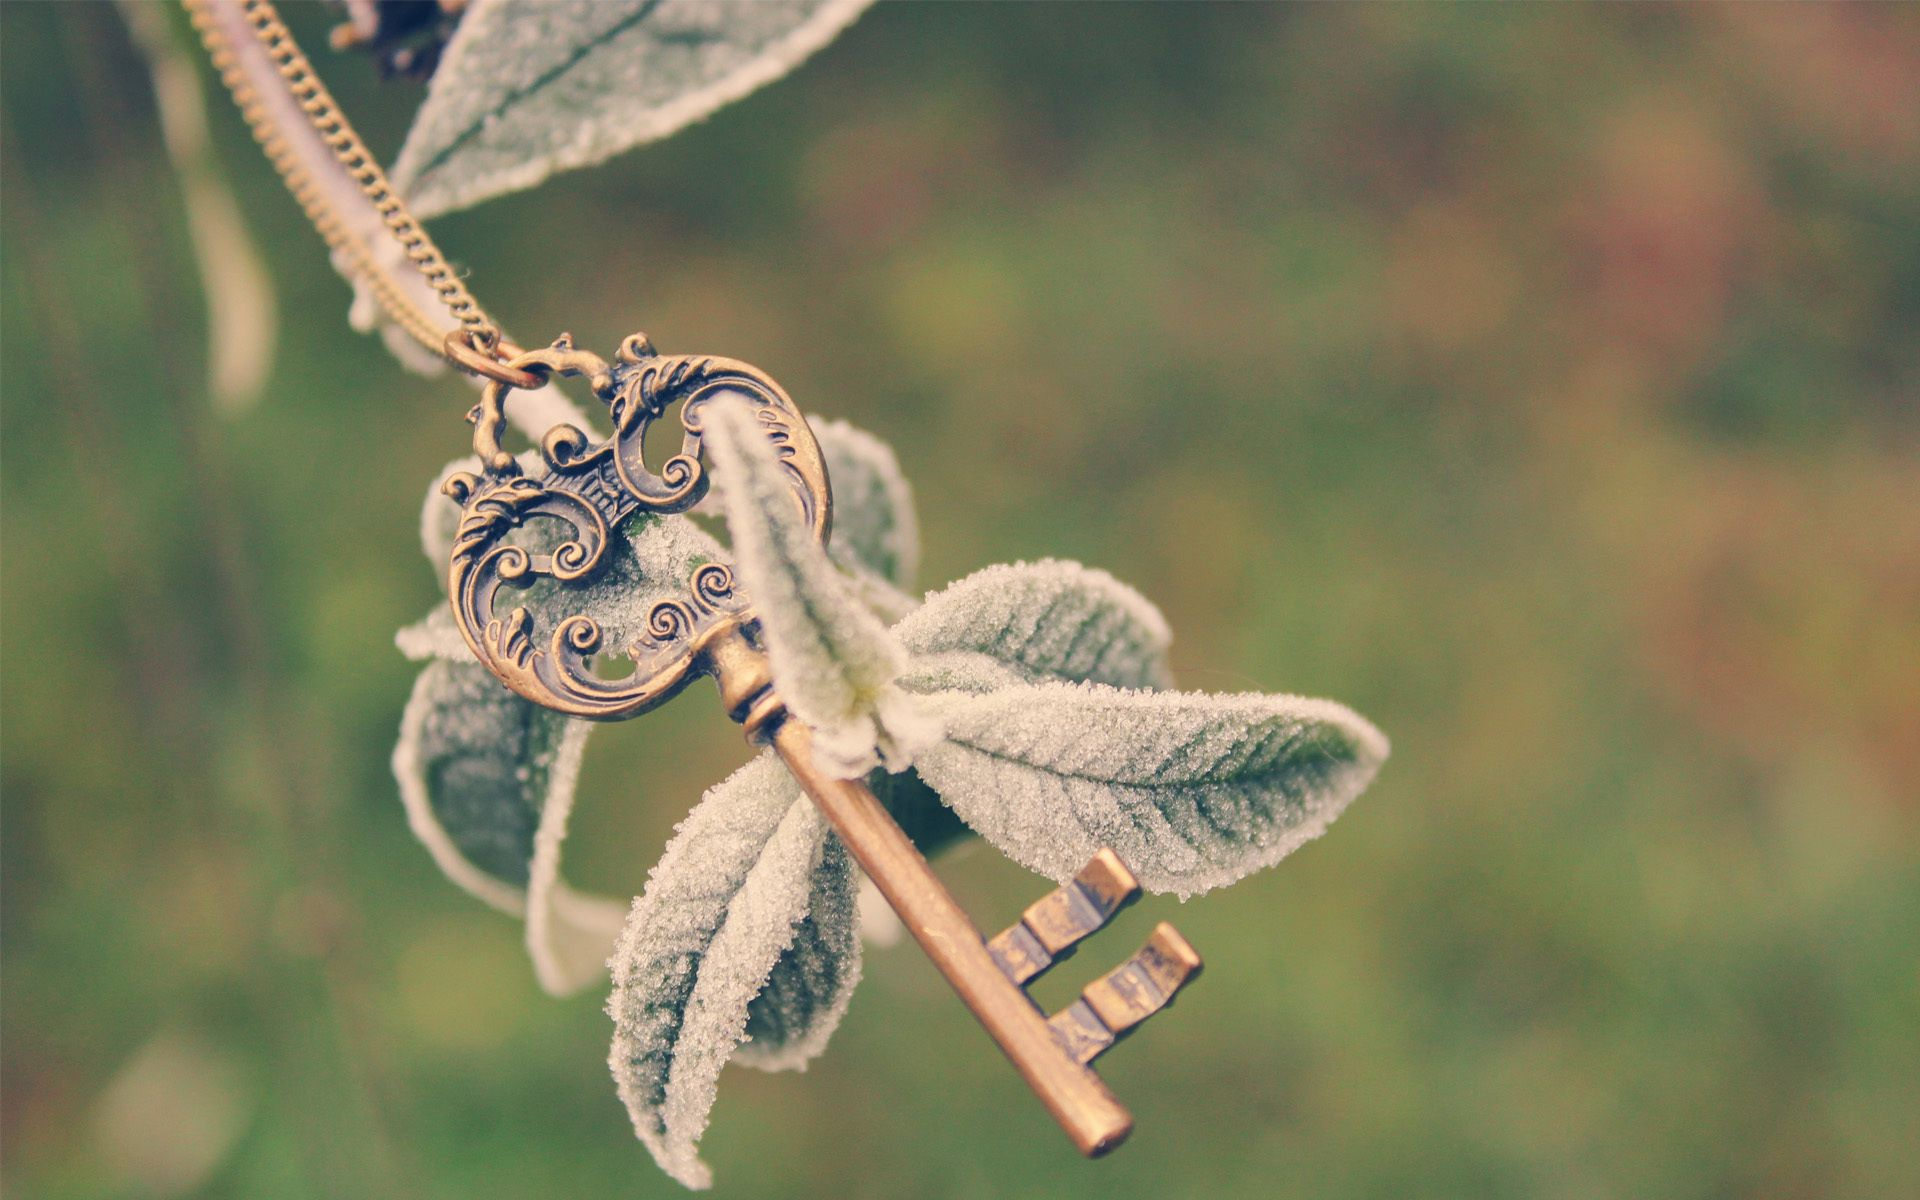 142894 download wallpaper Macro, Key, Plant, Branch, Frost, Hoarfrost, Leaves, Chain, Cold screensavers and pictures for free